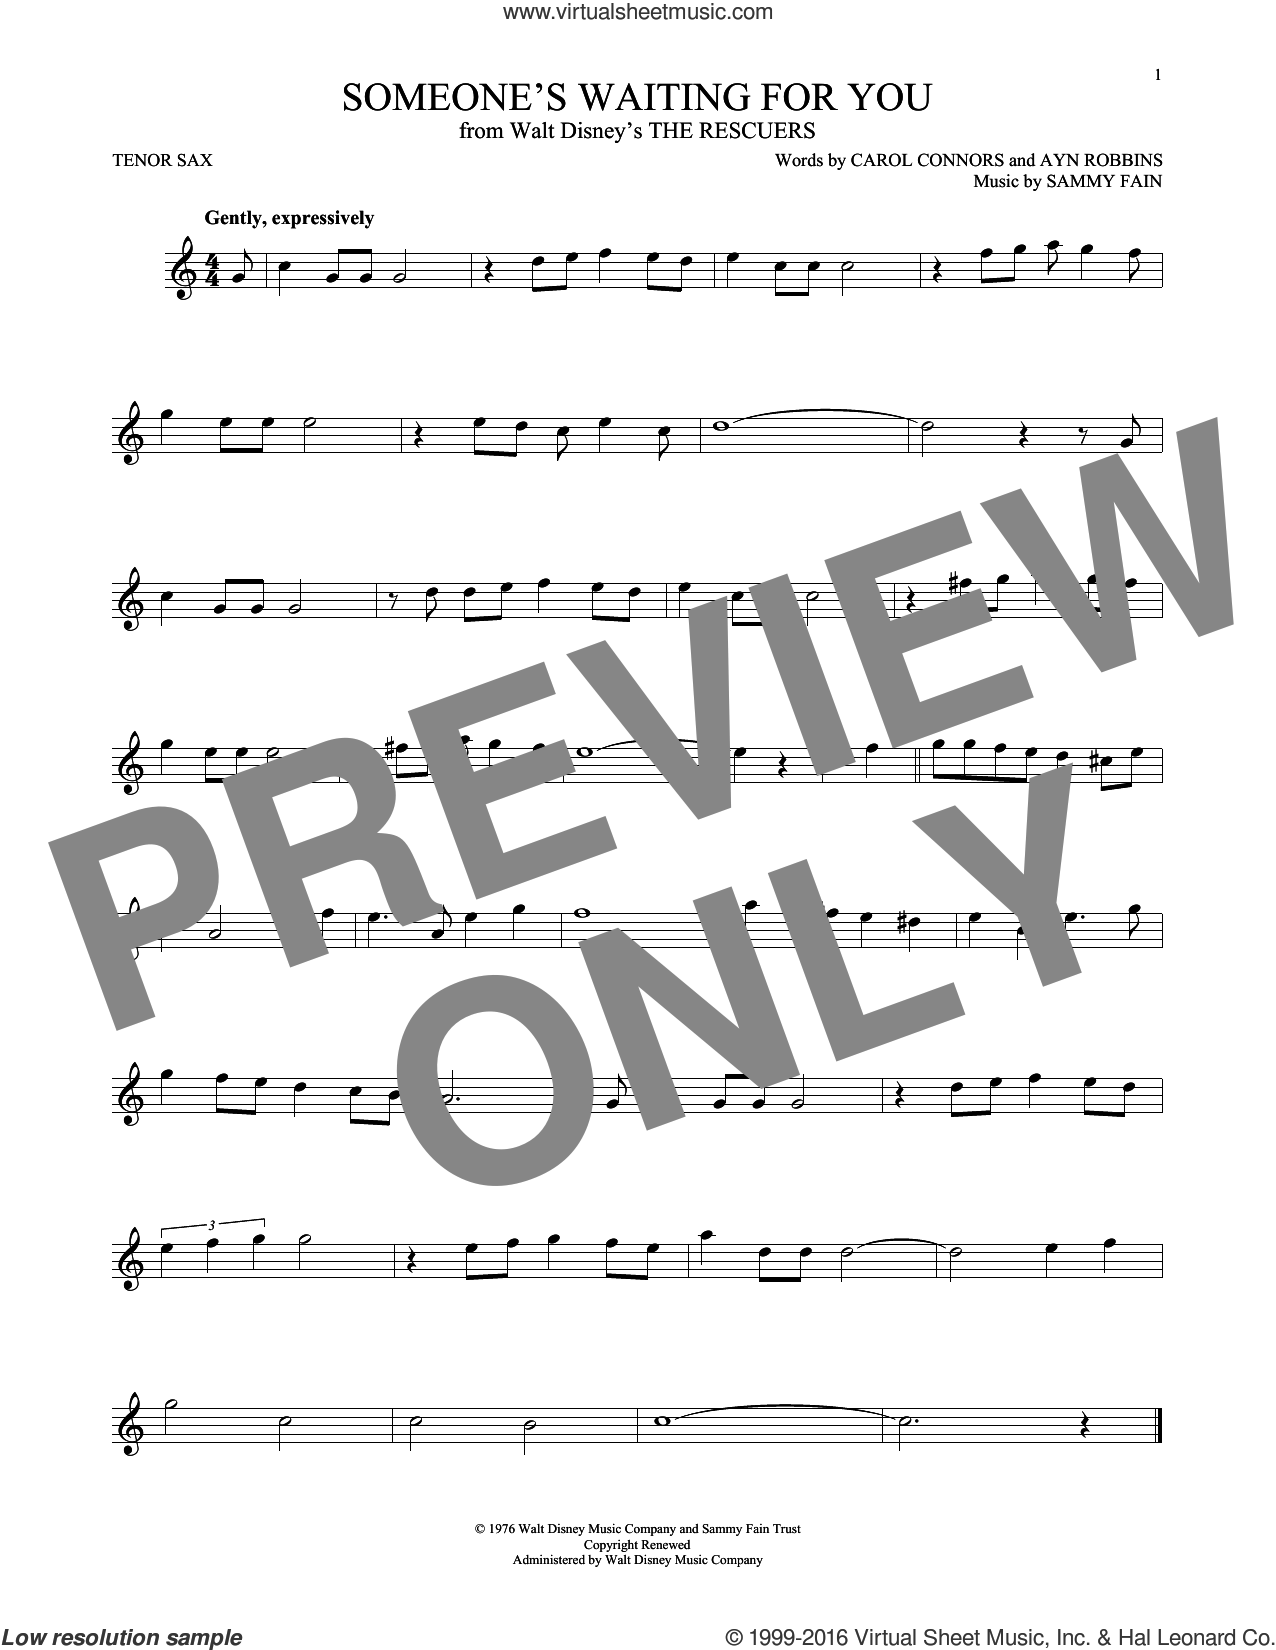 Someone's Waiting For You sheet music for tenor saxophone solo by Sammy Fain, Ayn Robbins and Carol Connors, intermediate. Score Image Preview.